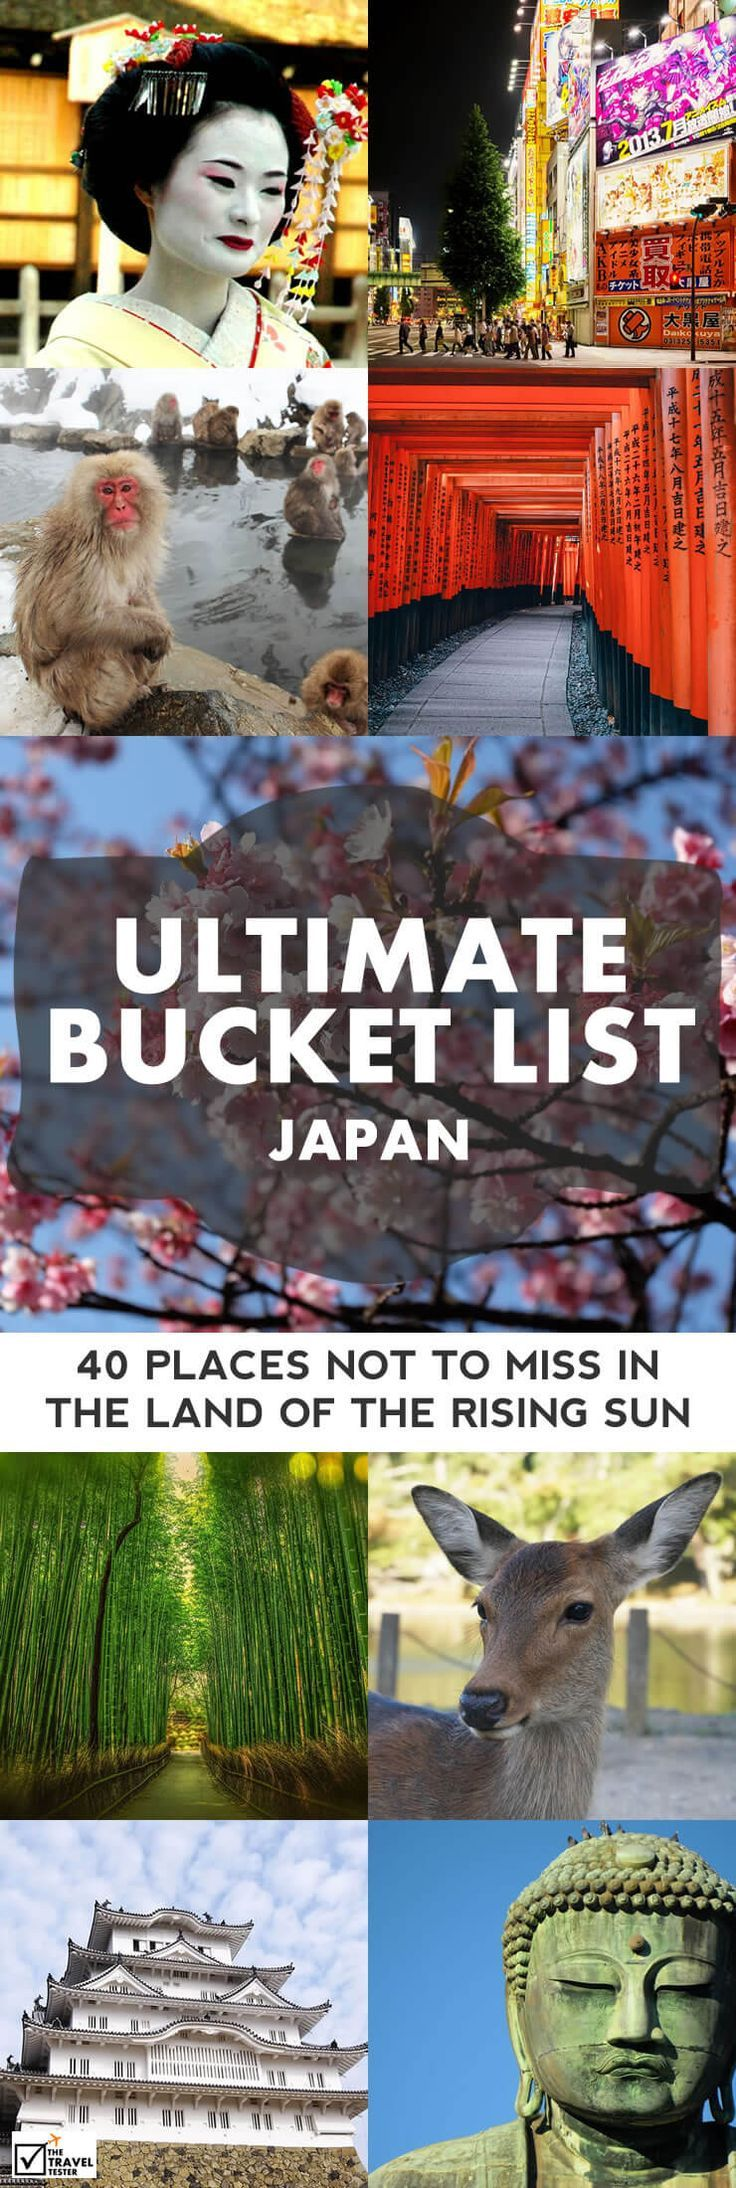 Japan Bucket List: 40 Places Not to Miss in the Land of the Rising Sun: From Tokyo to Kyoto and from Osaka to Okinawa and beyond! || The Travel Tester